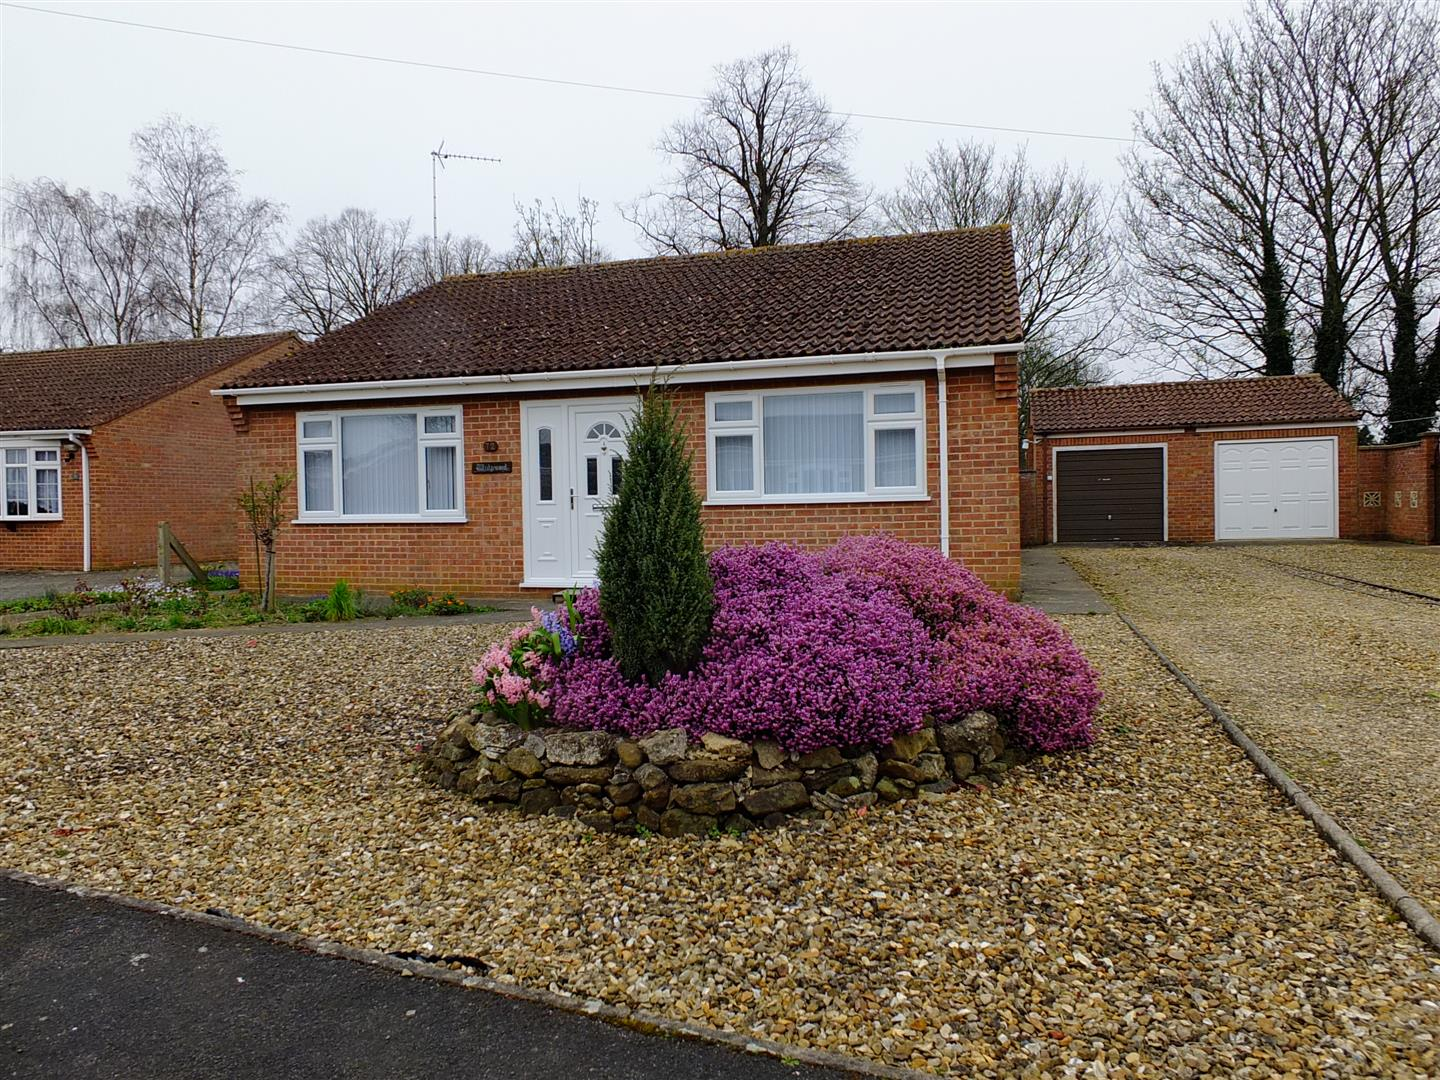 3 bed house to rent in Long Sutton Spalding, PE12 9LZ  - Property Image 1